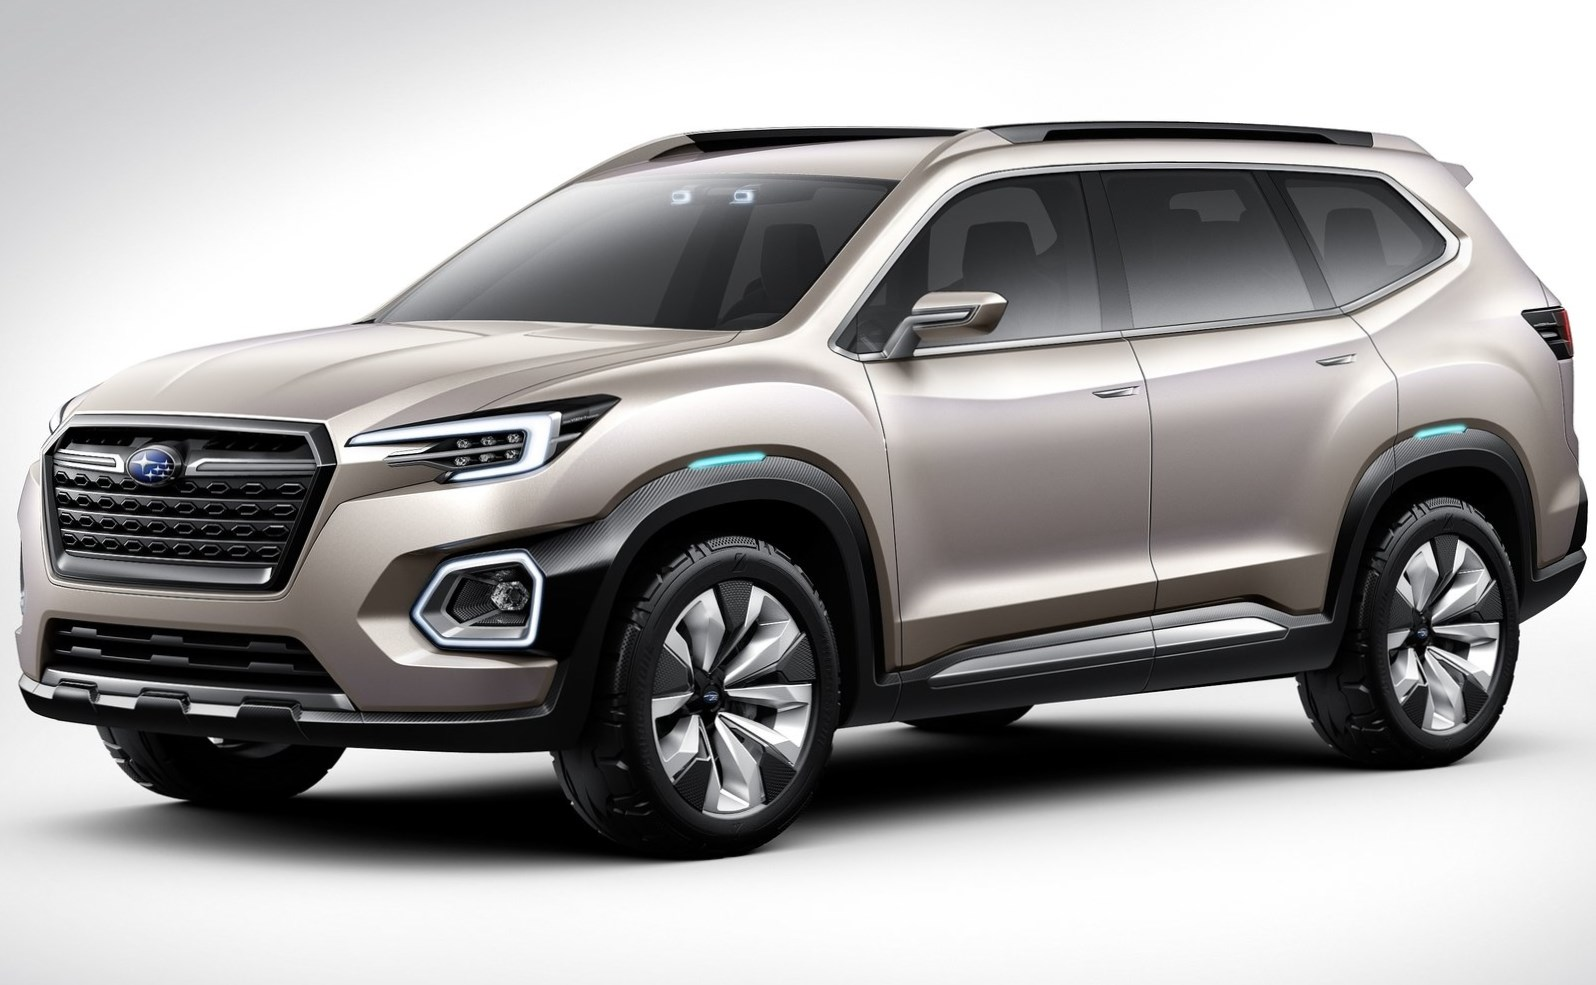 Subaru Neuheiten 2018 >> Viziv 7 Enorme Suv De Subaru Concept Automotiva | 2017 - 2018 Best Cars Reviews